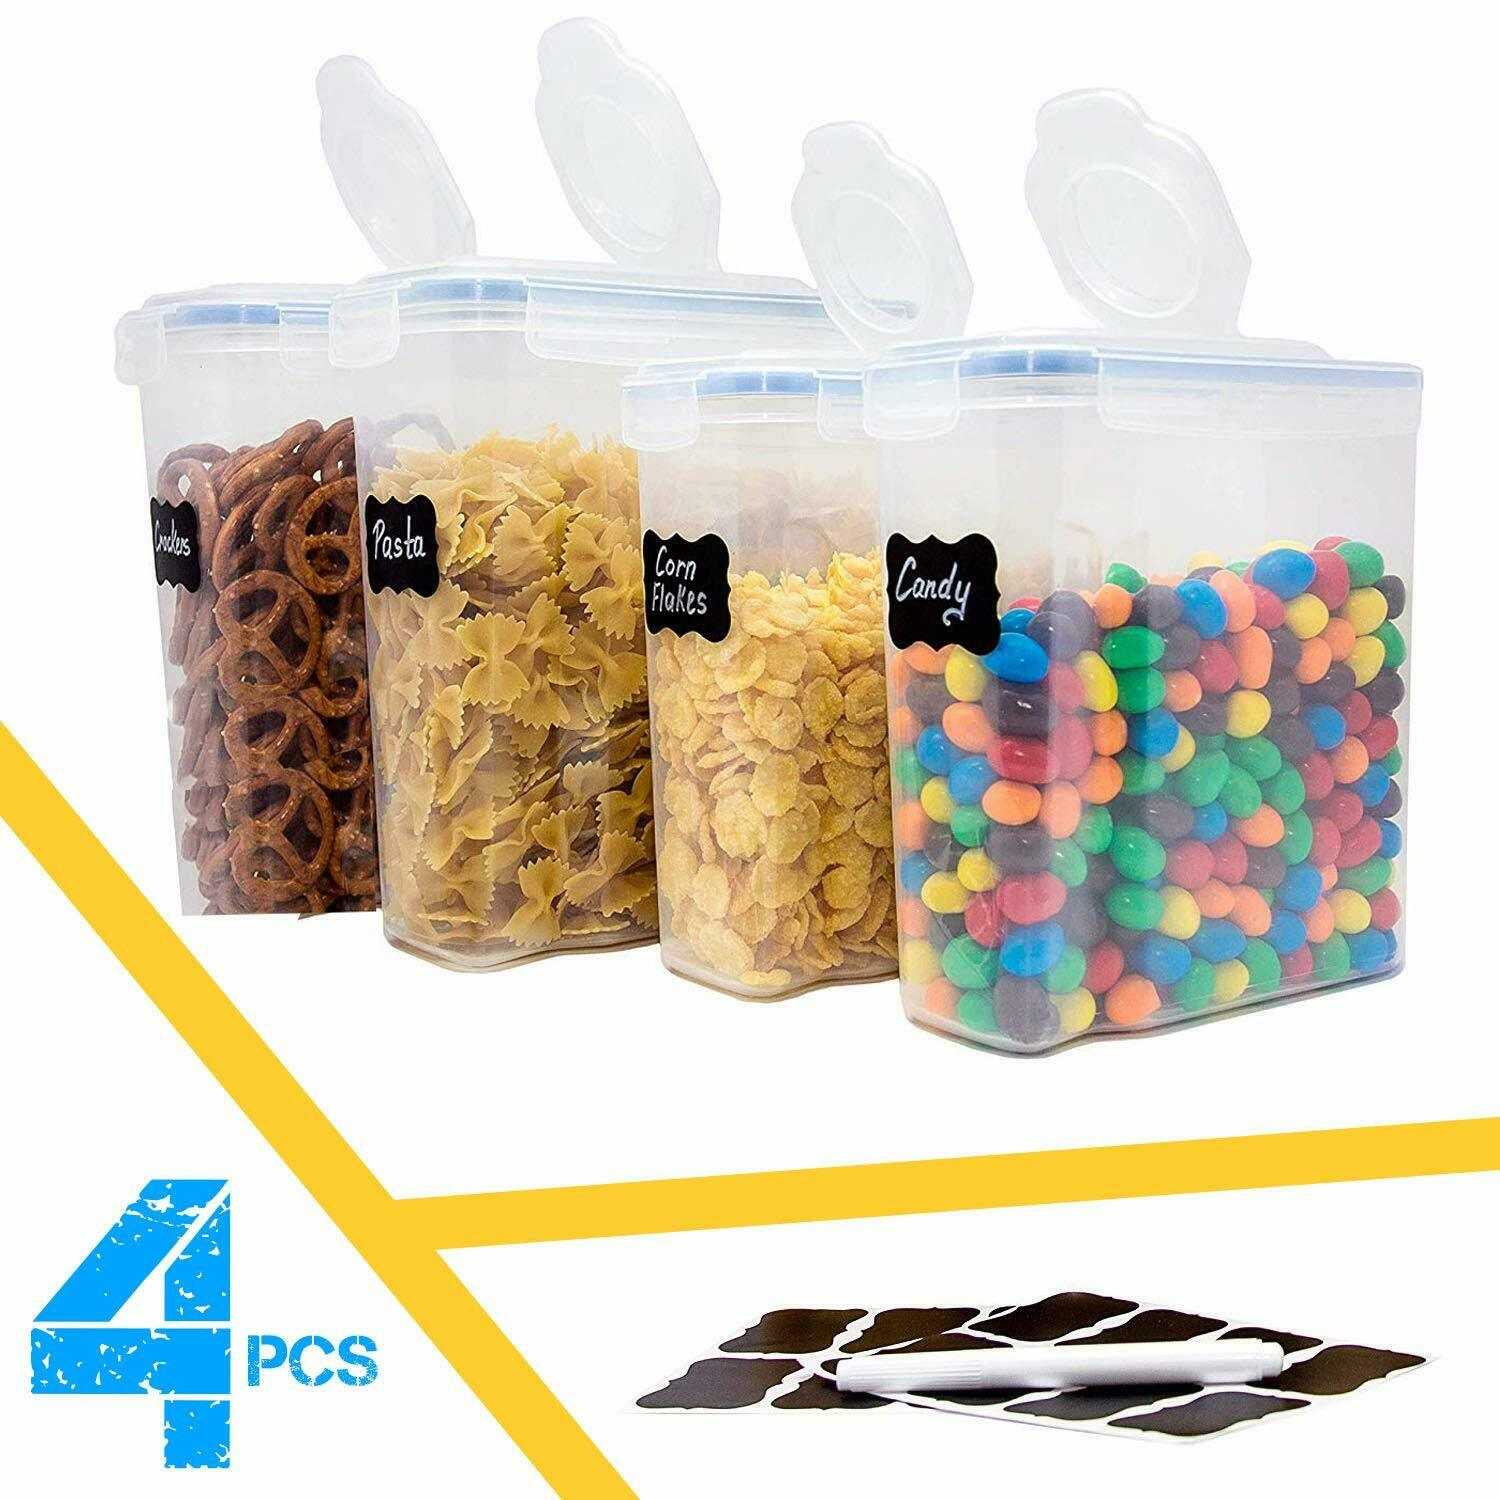 Cereal Container Airtight BPA Free Kitchen Dry Food Storage Containers Set of 4 1